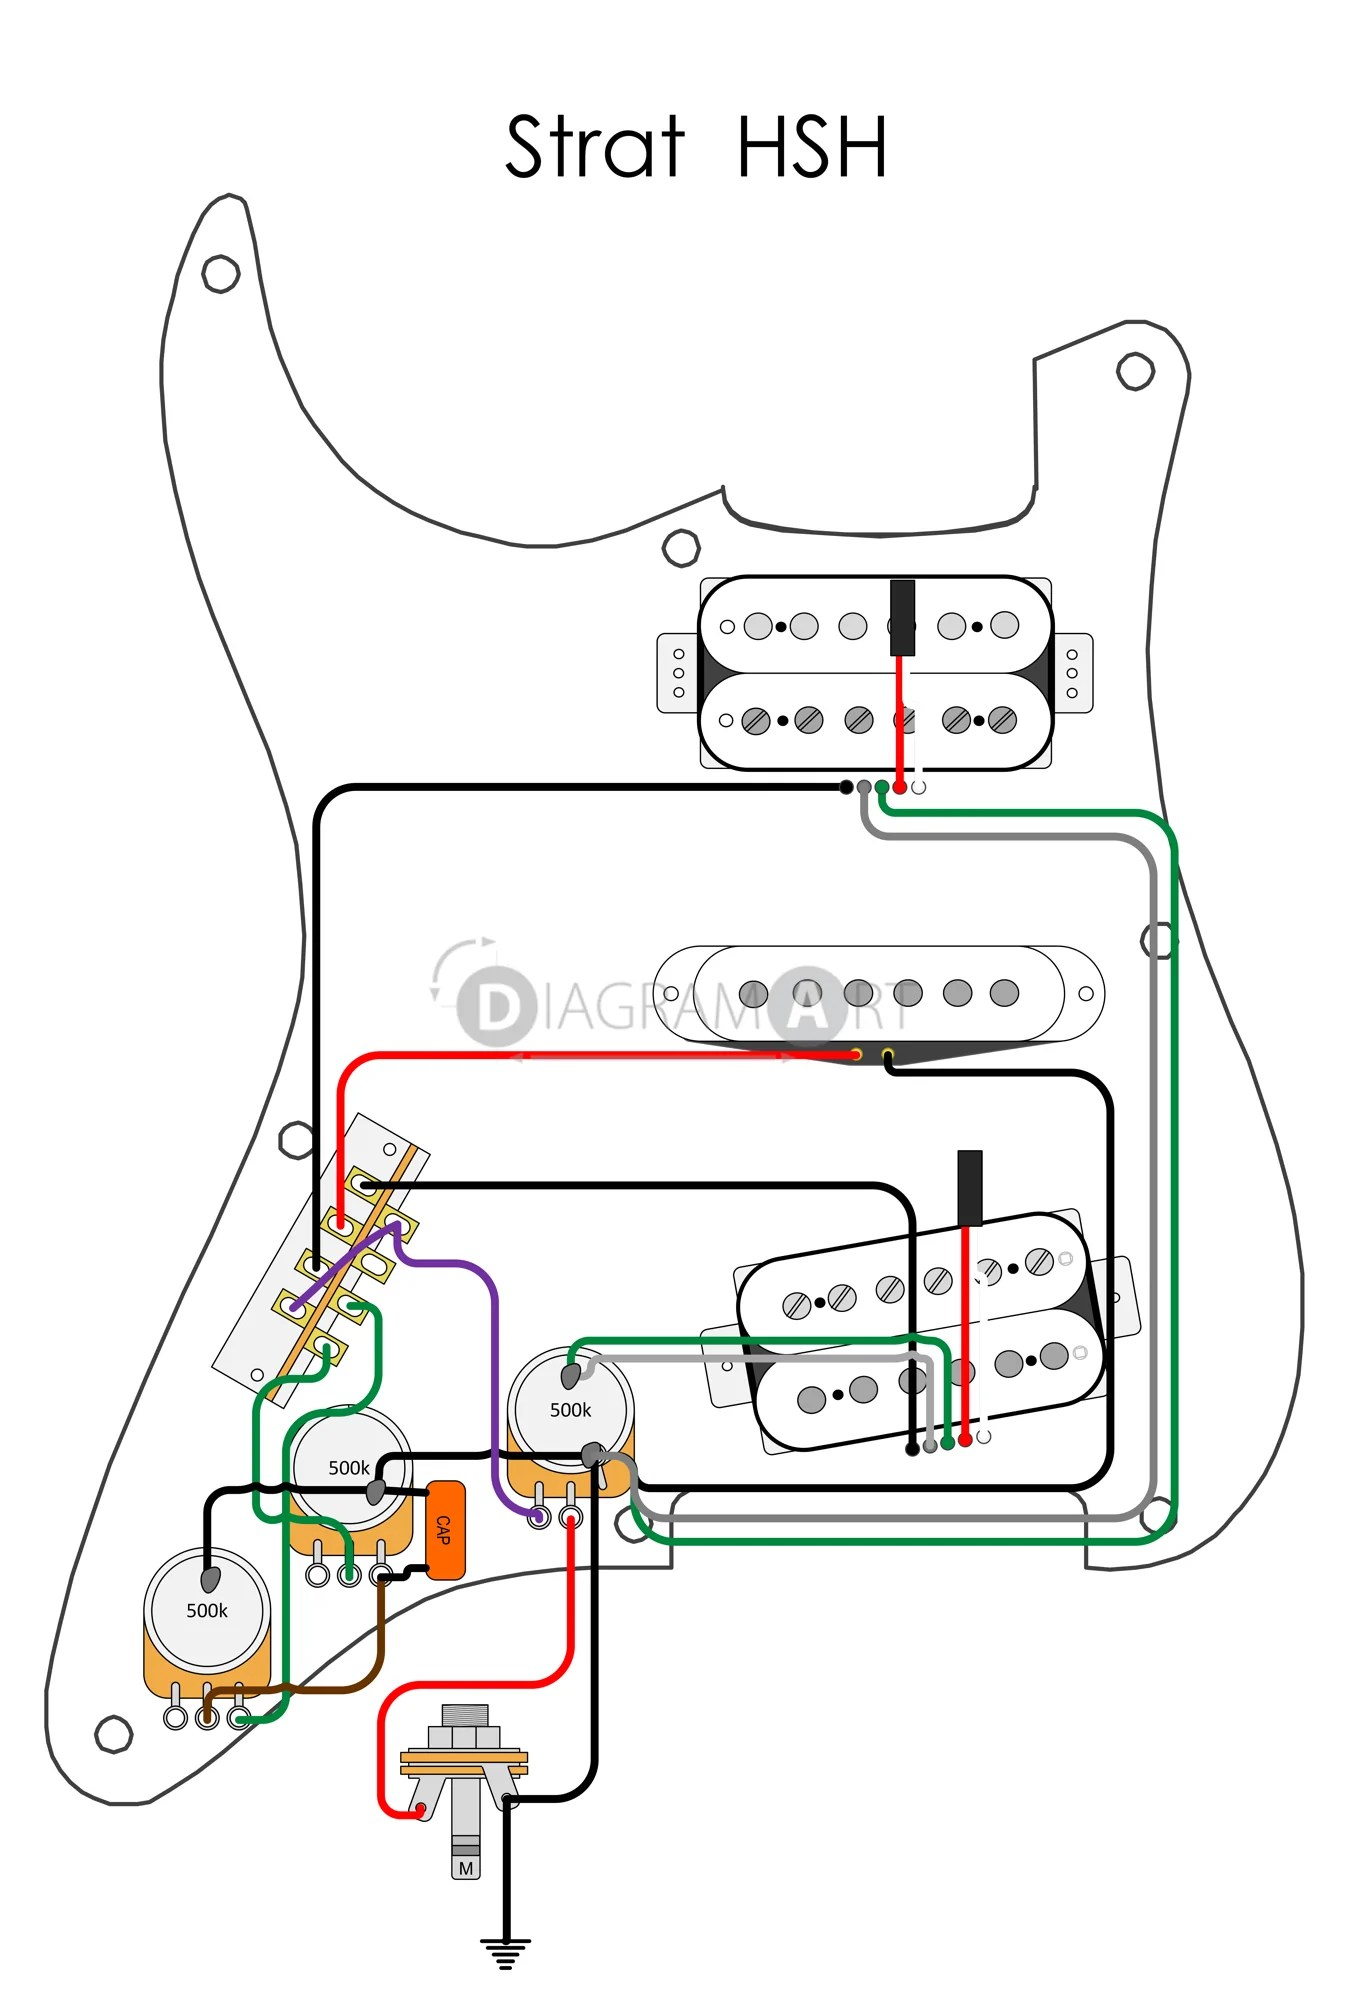 hight resolution of hsh guitar wiring ngs wiring diagram squier strat wiring diagram hhh guitar wiring diagram wiring diagram